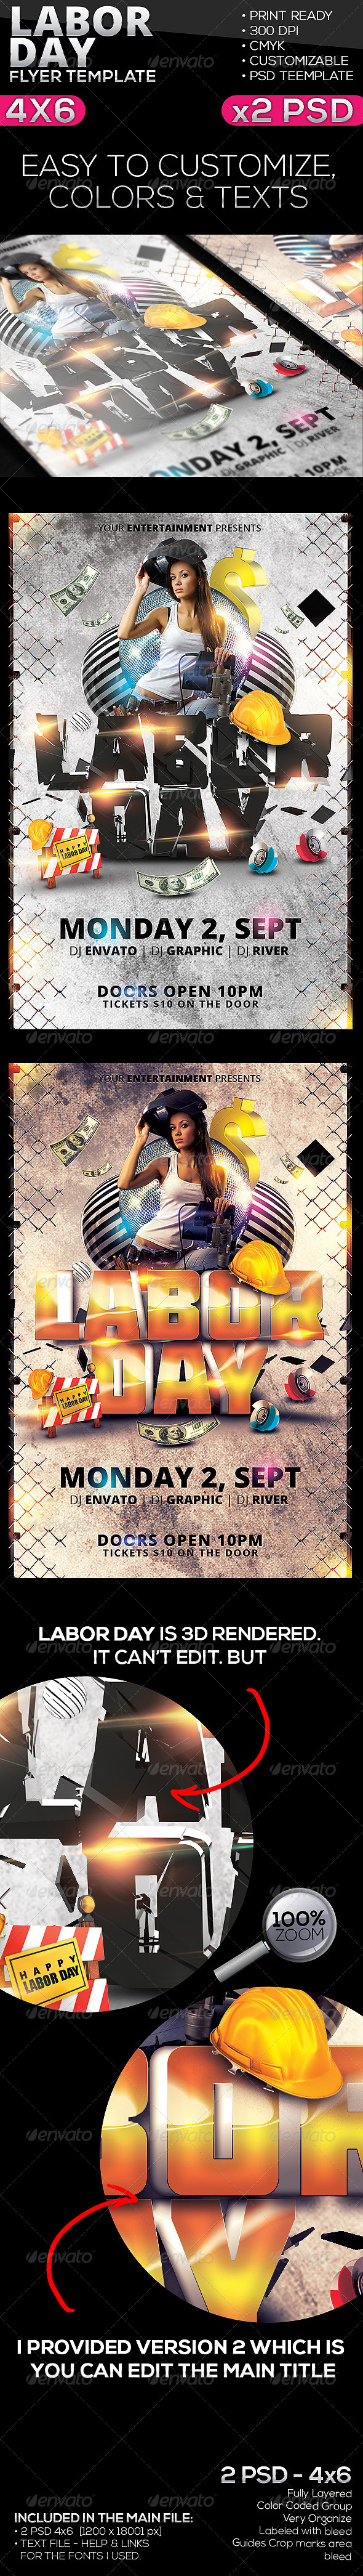 GraphicRiver Labor Day Flyer Template 5415310